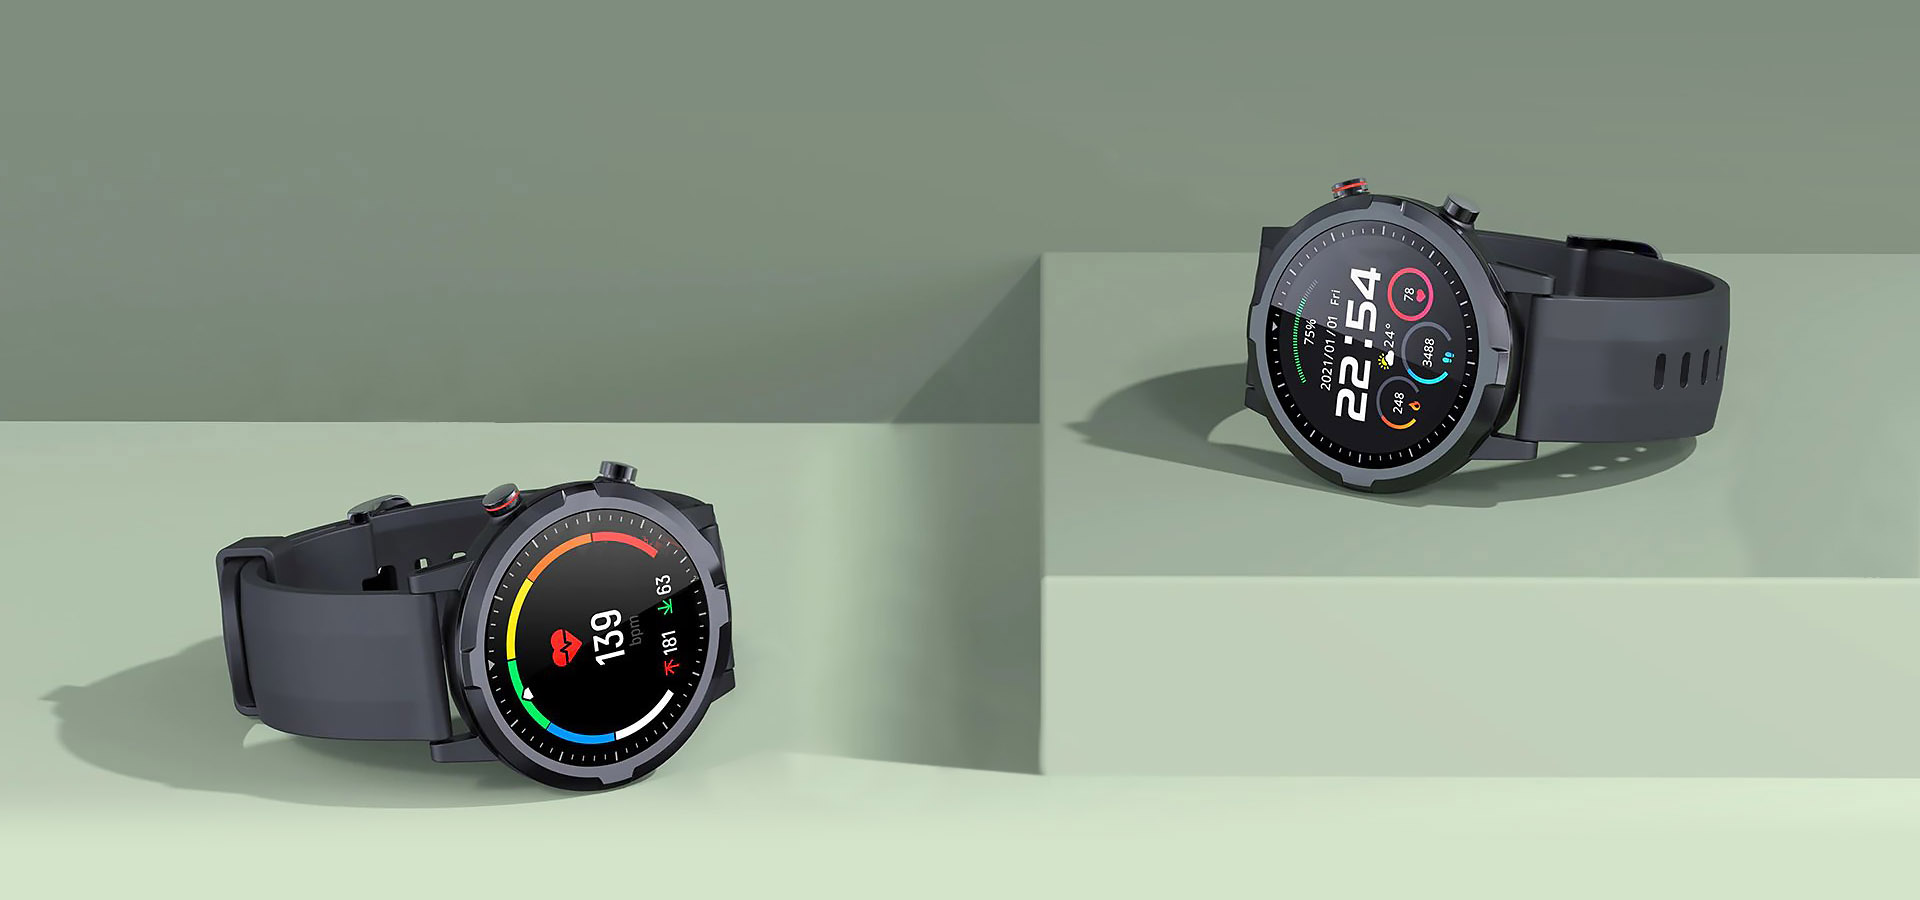 Haylou RT LS05S Two smart watches on green